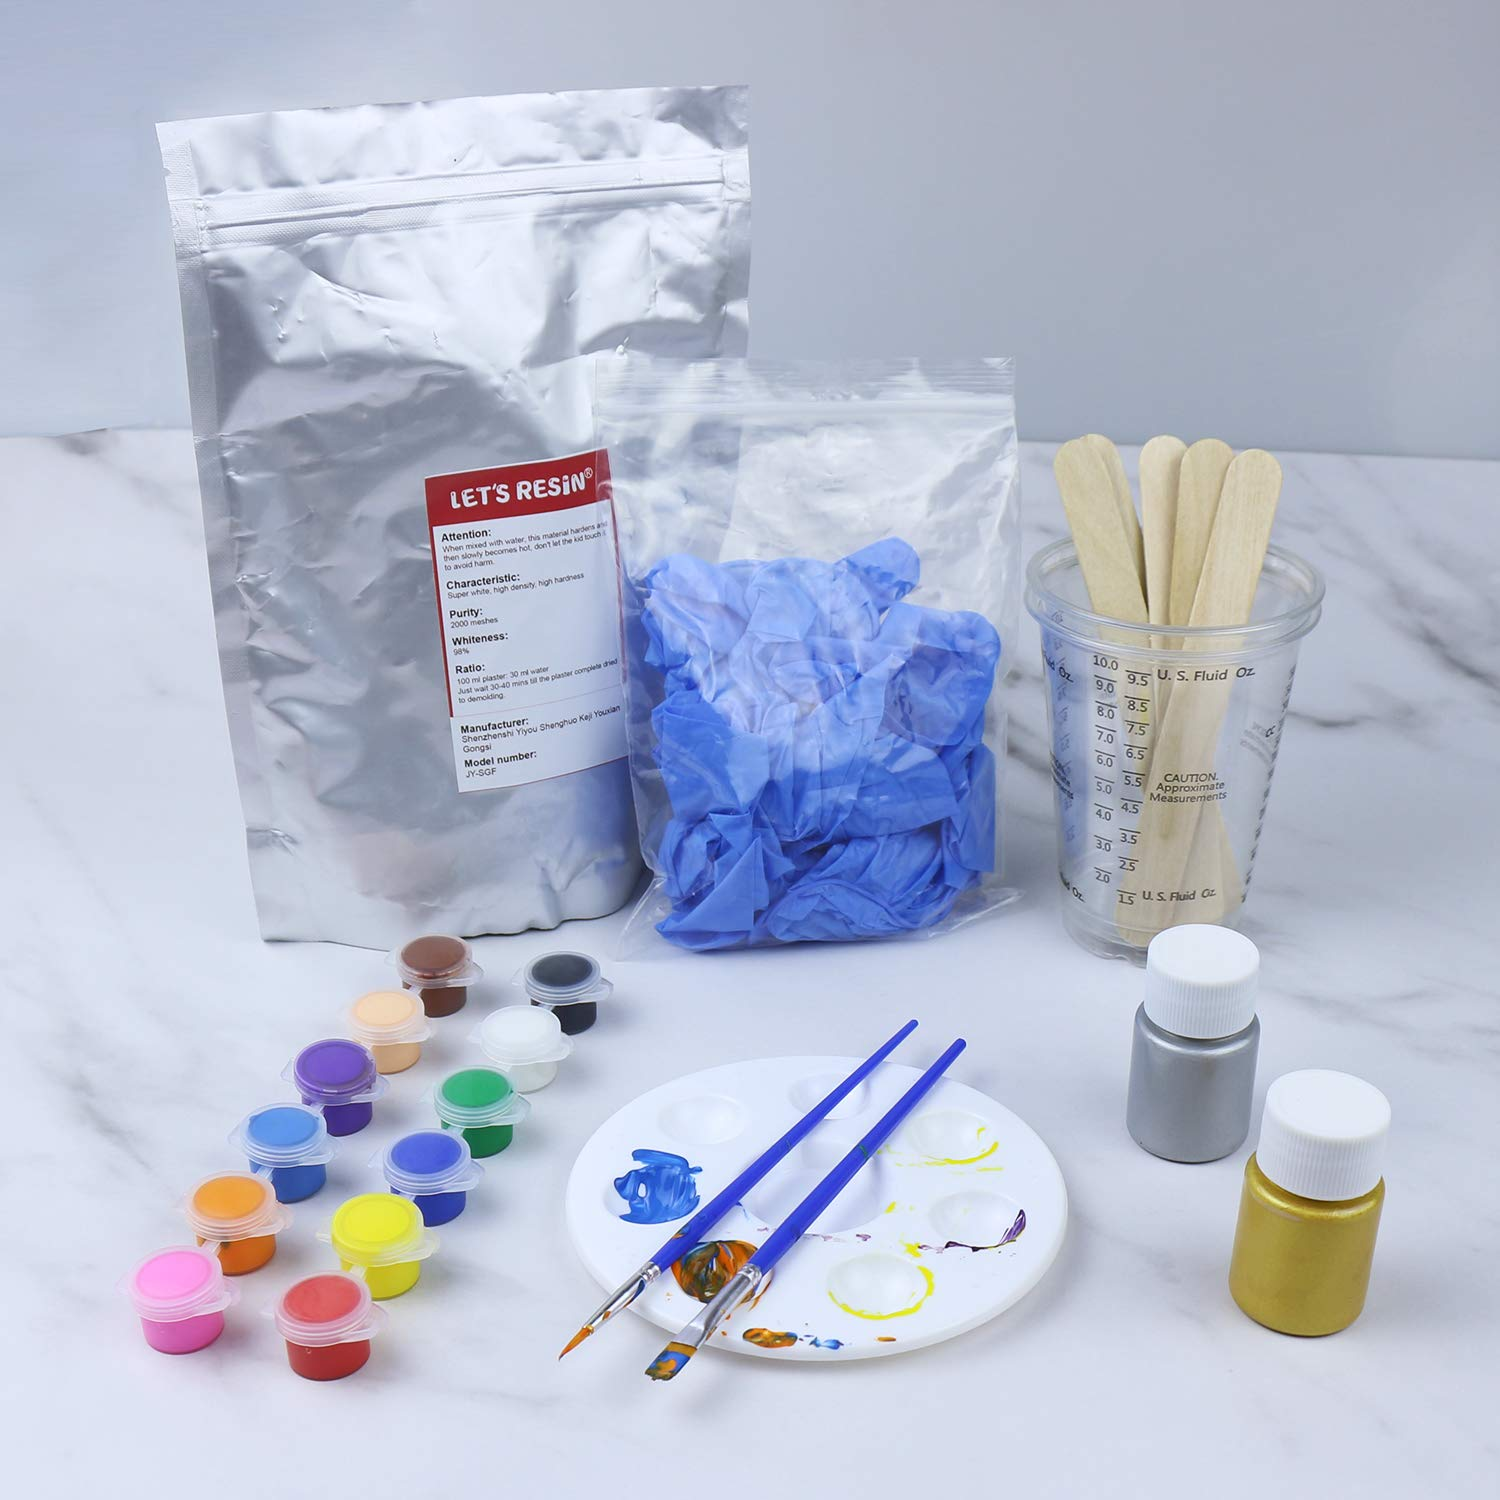 1 Pound DIY Hand Casting Kit with 14 Colors Acrylic Paint Paint Brush,for Gypsum Statue and DIY Statue Craft. High-Density Statue Molding Kit